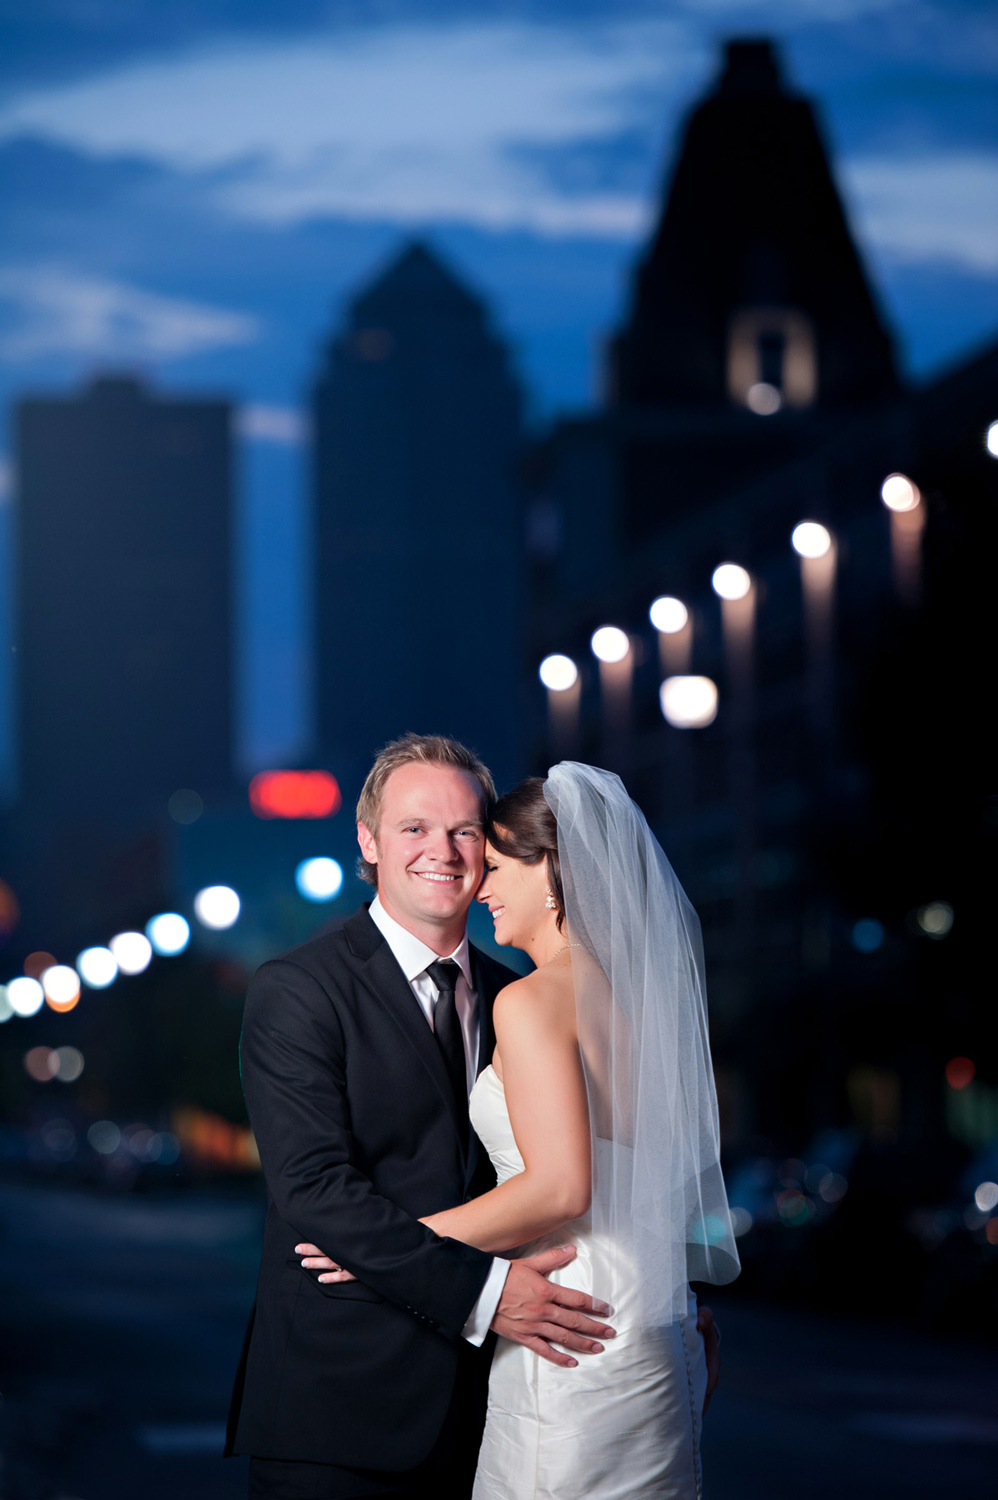 minnesota-wedding-photographers-mark-kegans-938.jpg